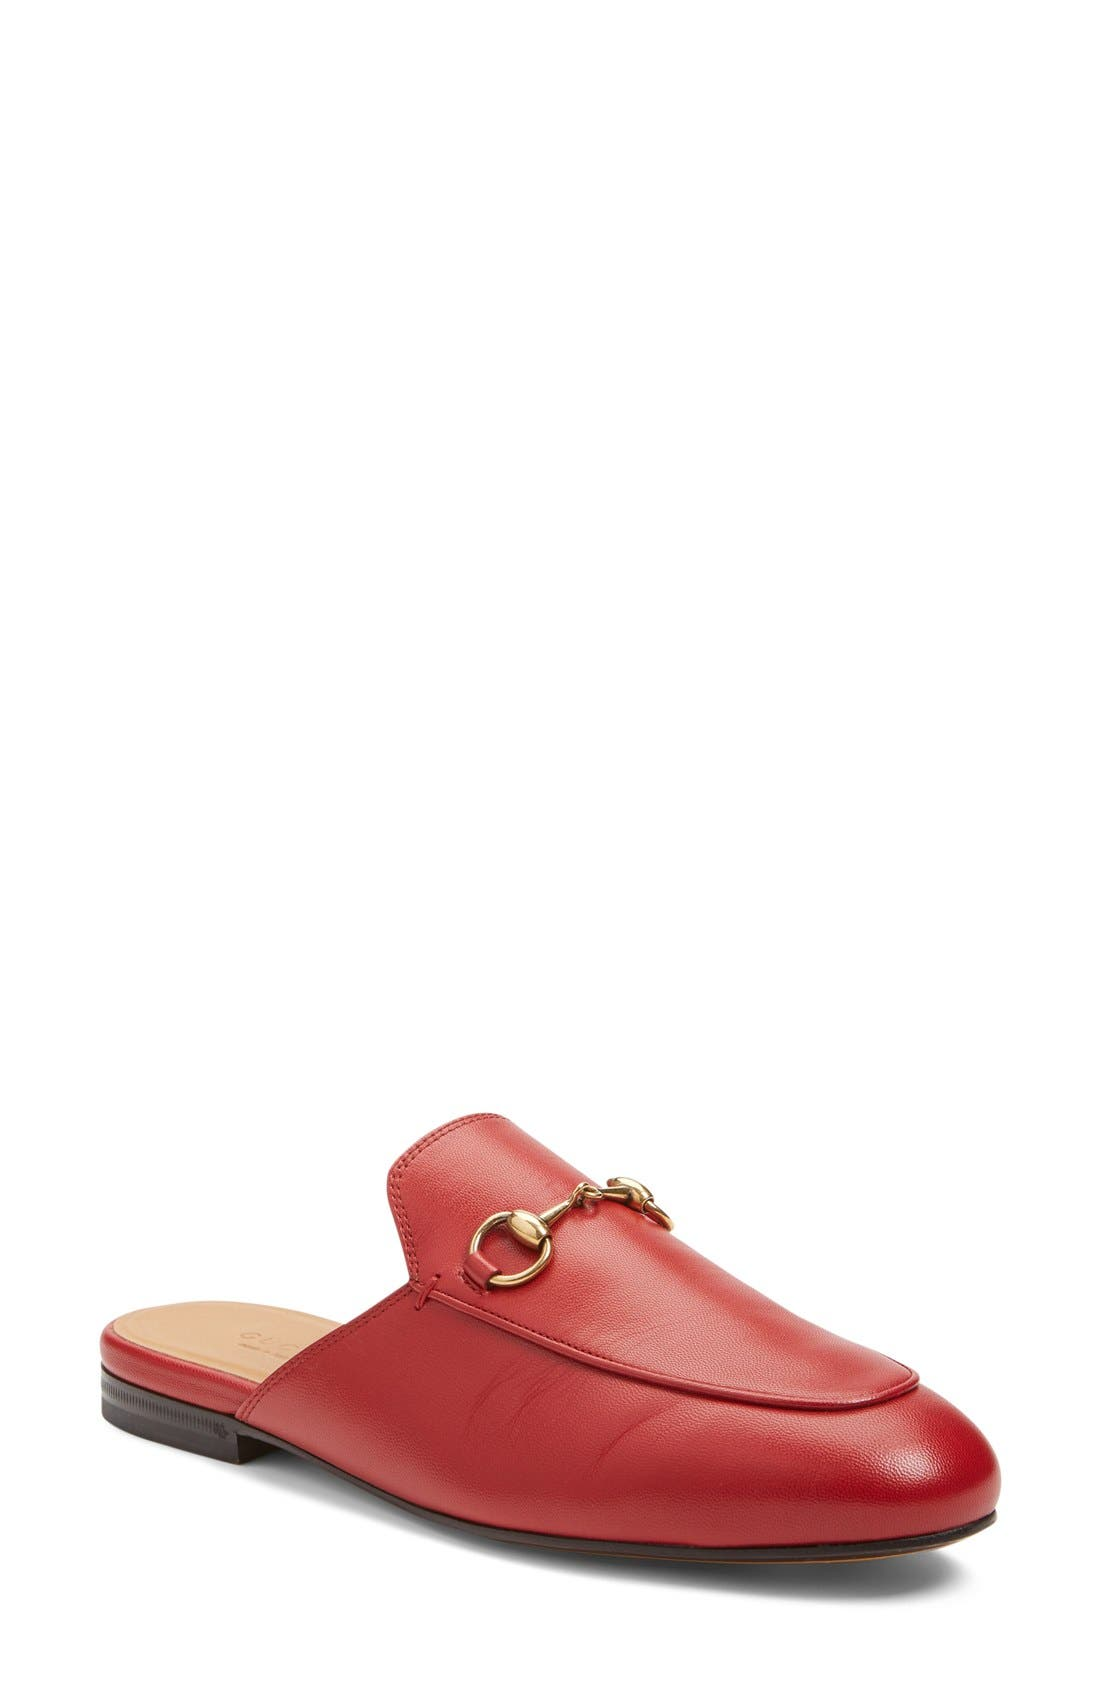 GUCCI Princetown Loafer Mule, Main, color, RED LEATHER